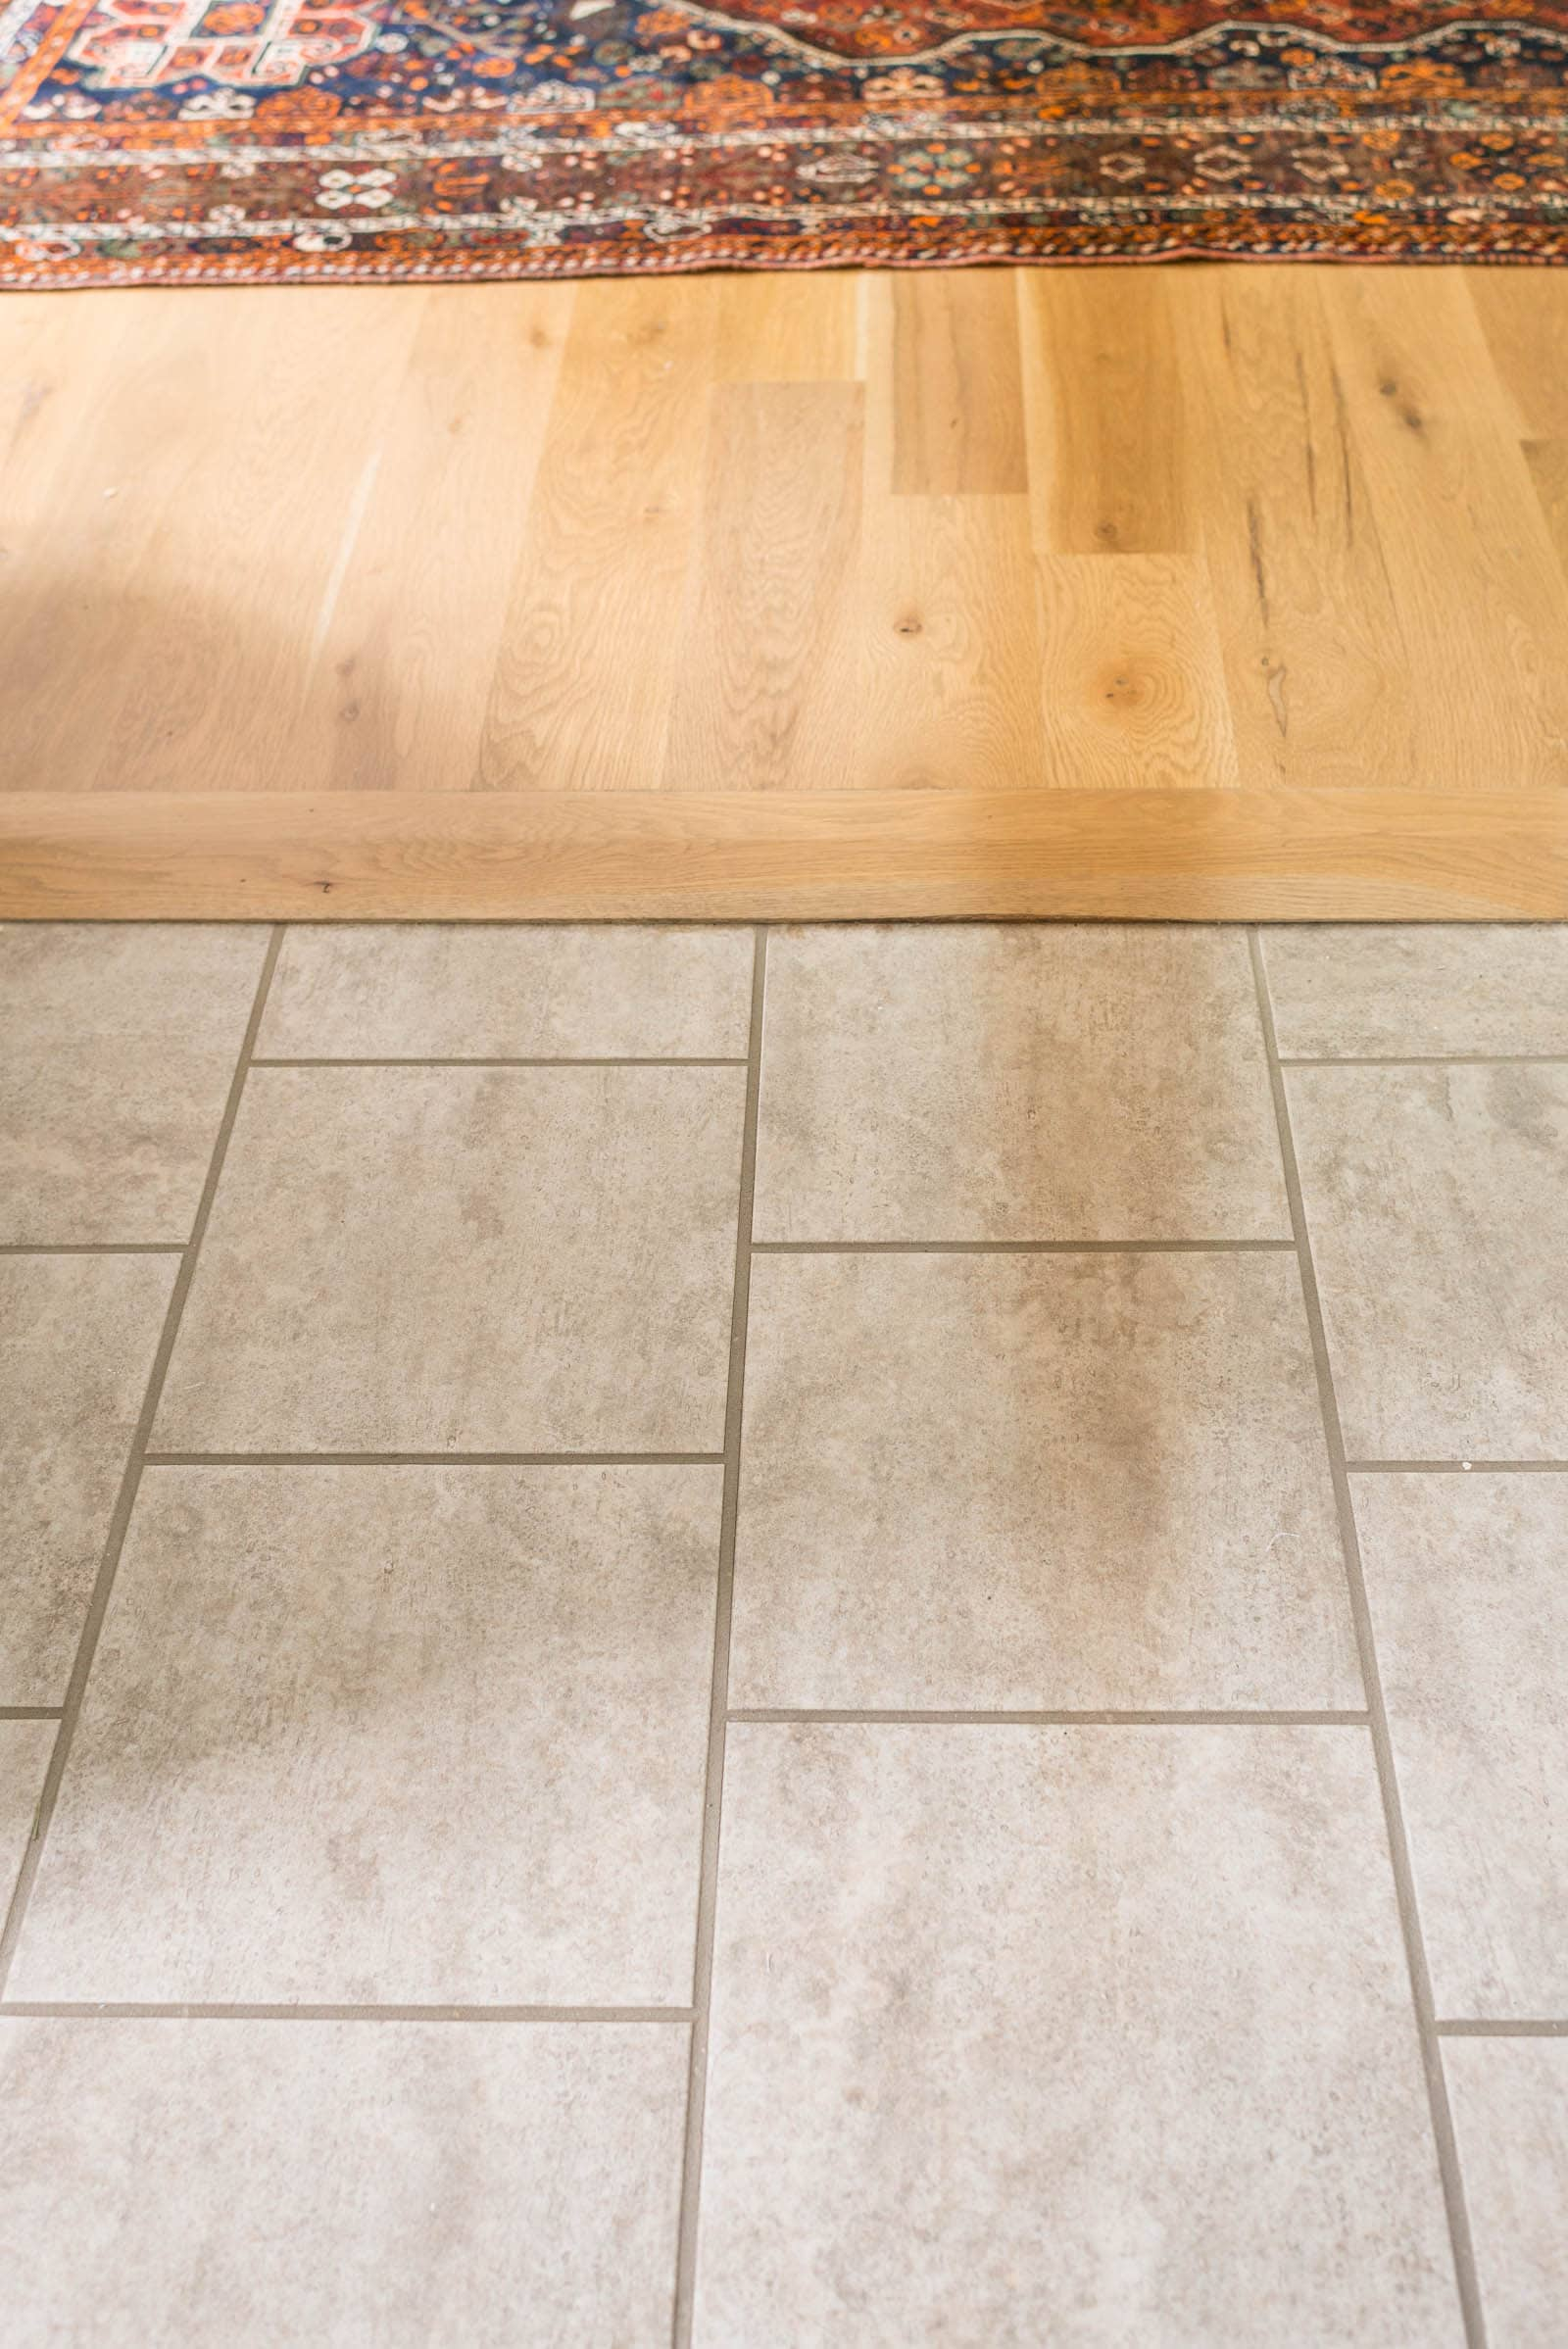 Peel and stick vinyl floor tile transition